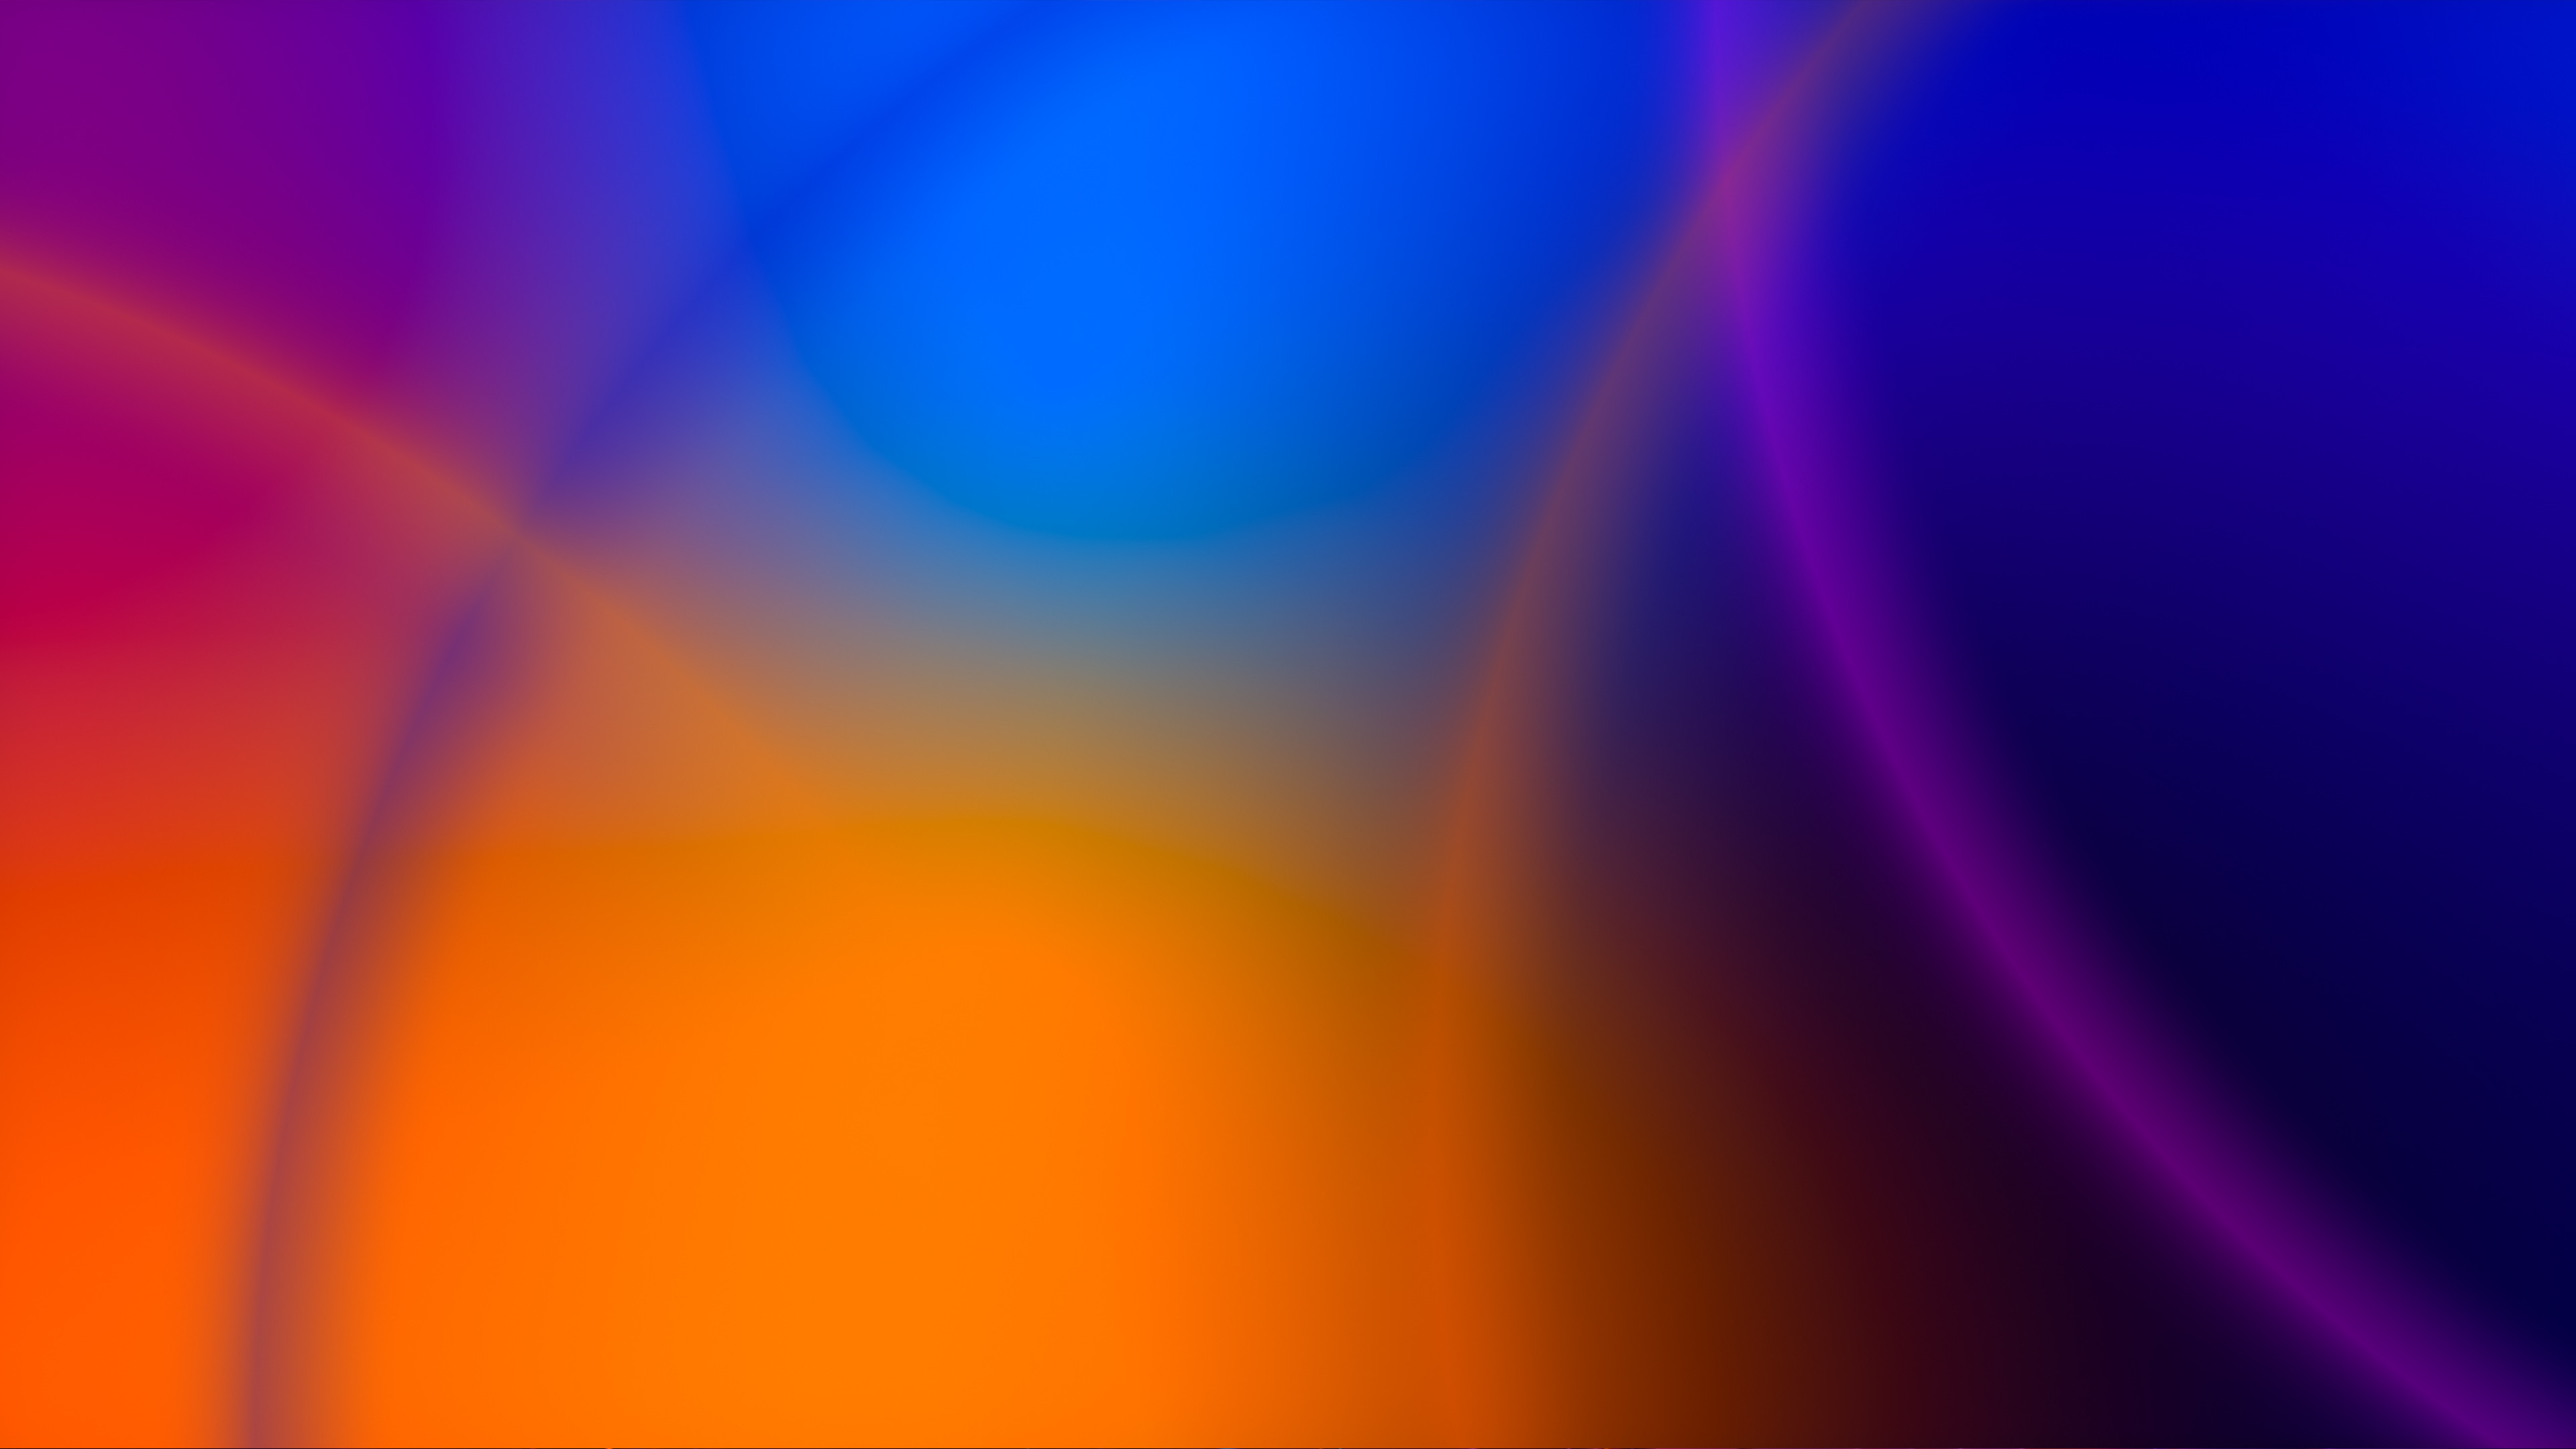 blur abstract art 4k oc 3840x2160 1 - Blur Abstract Art -